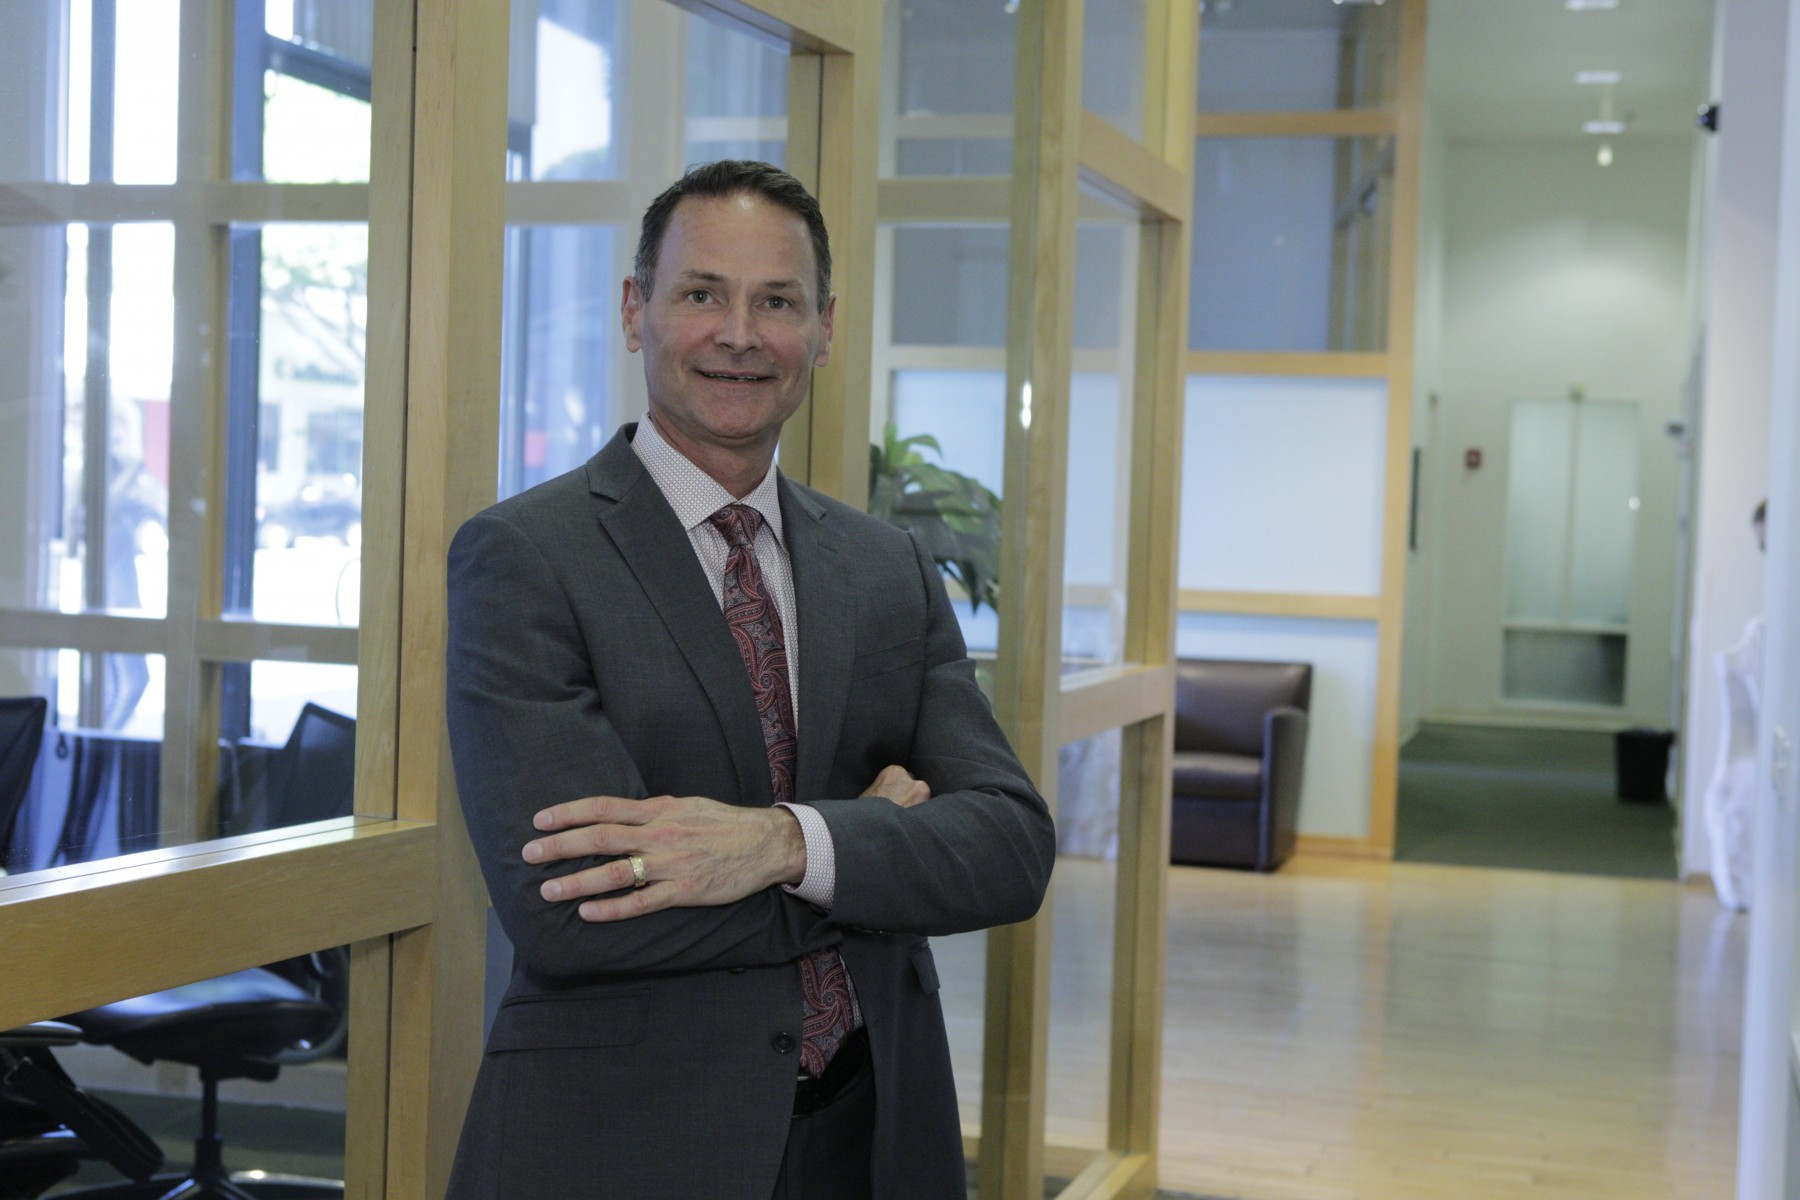 John Jenrette, MD, executive vice president of the Cedars-Sinai Medical Network, was recently interviewed by Healthline. Photo by Cedars-Sinai.